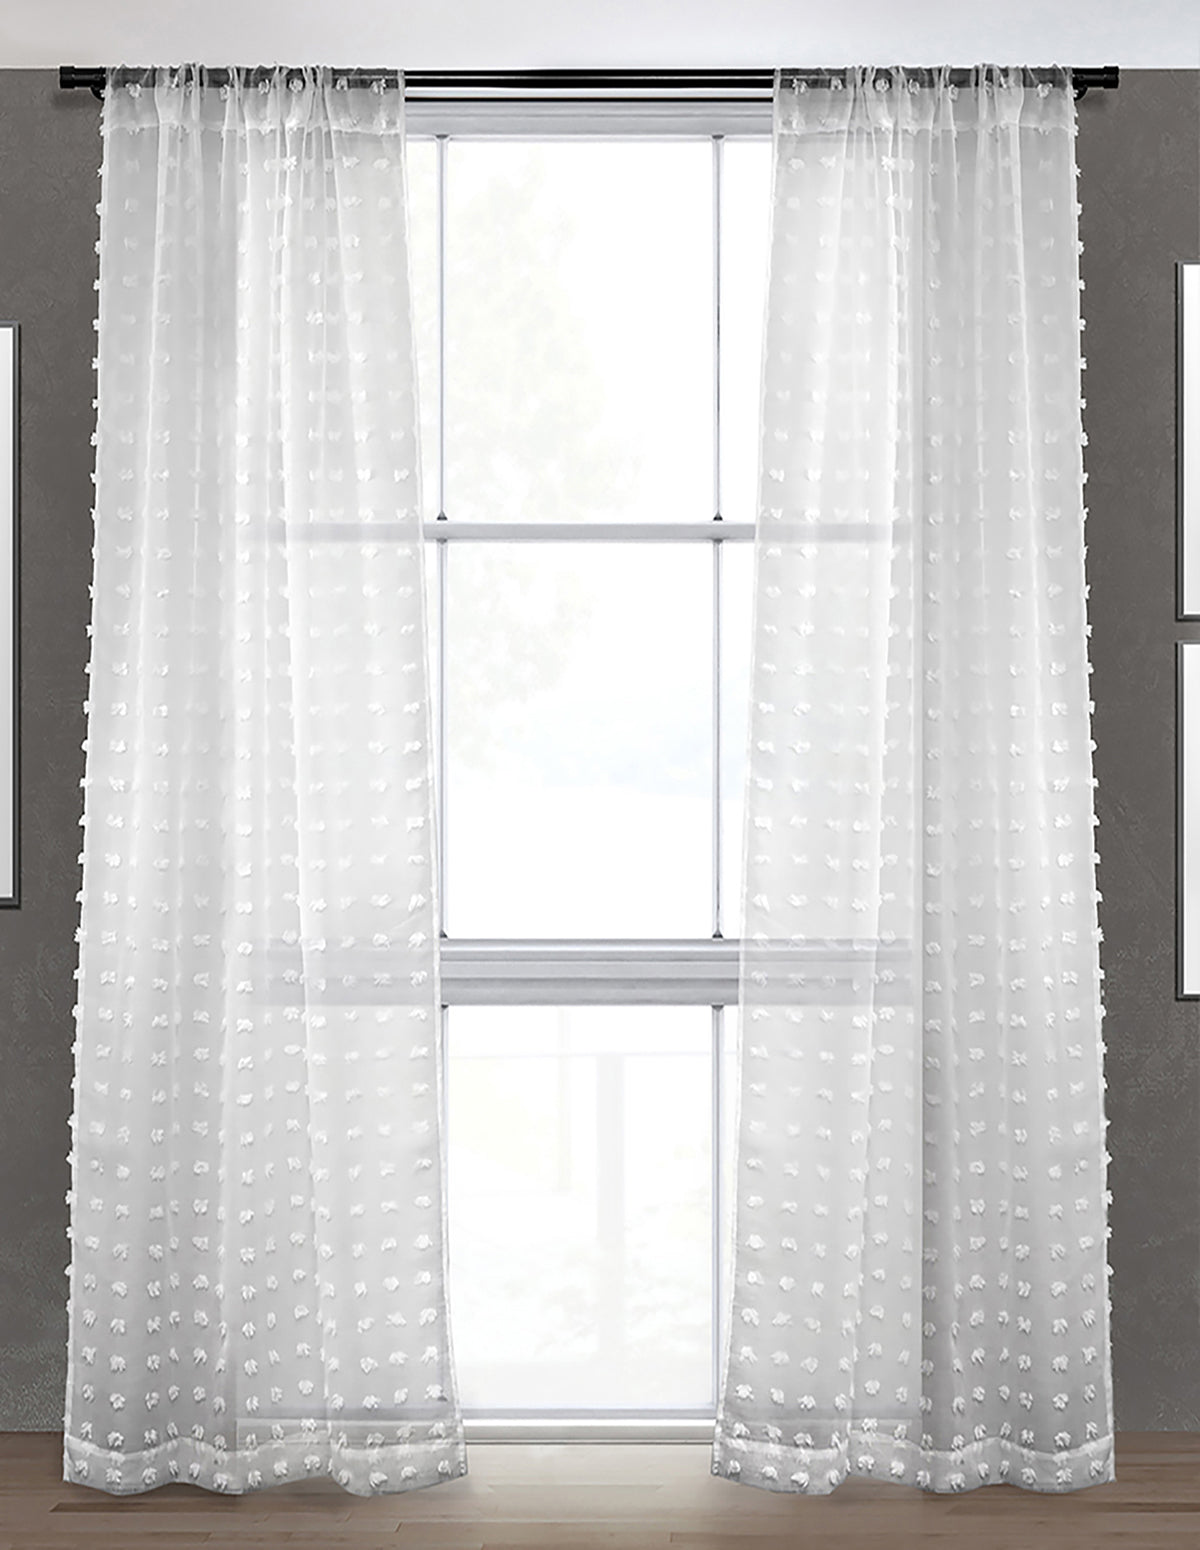 LITEOUT - PUFFY SHEER CURTAIN PANEL (PAIR)